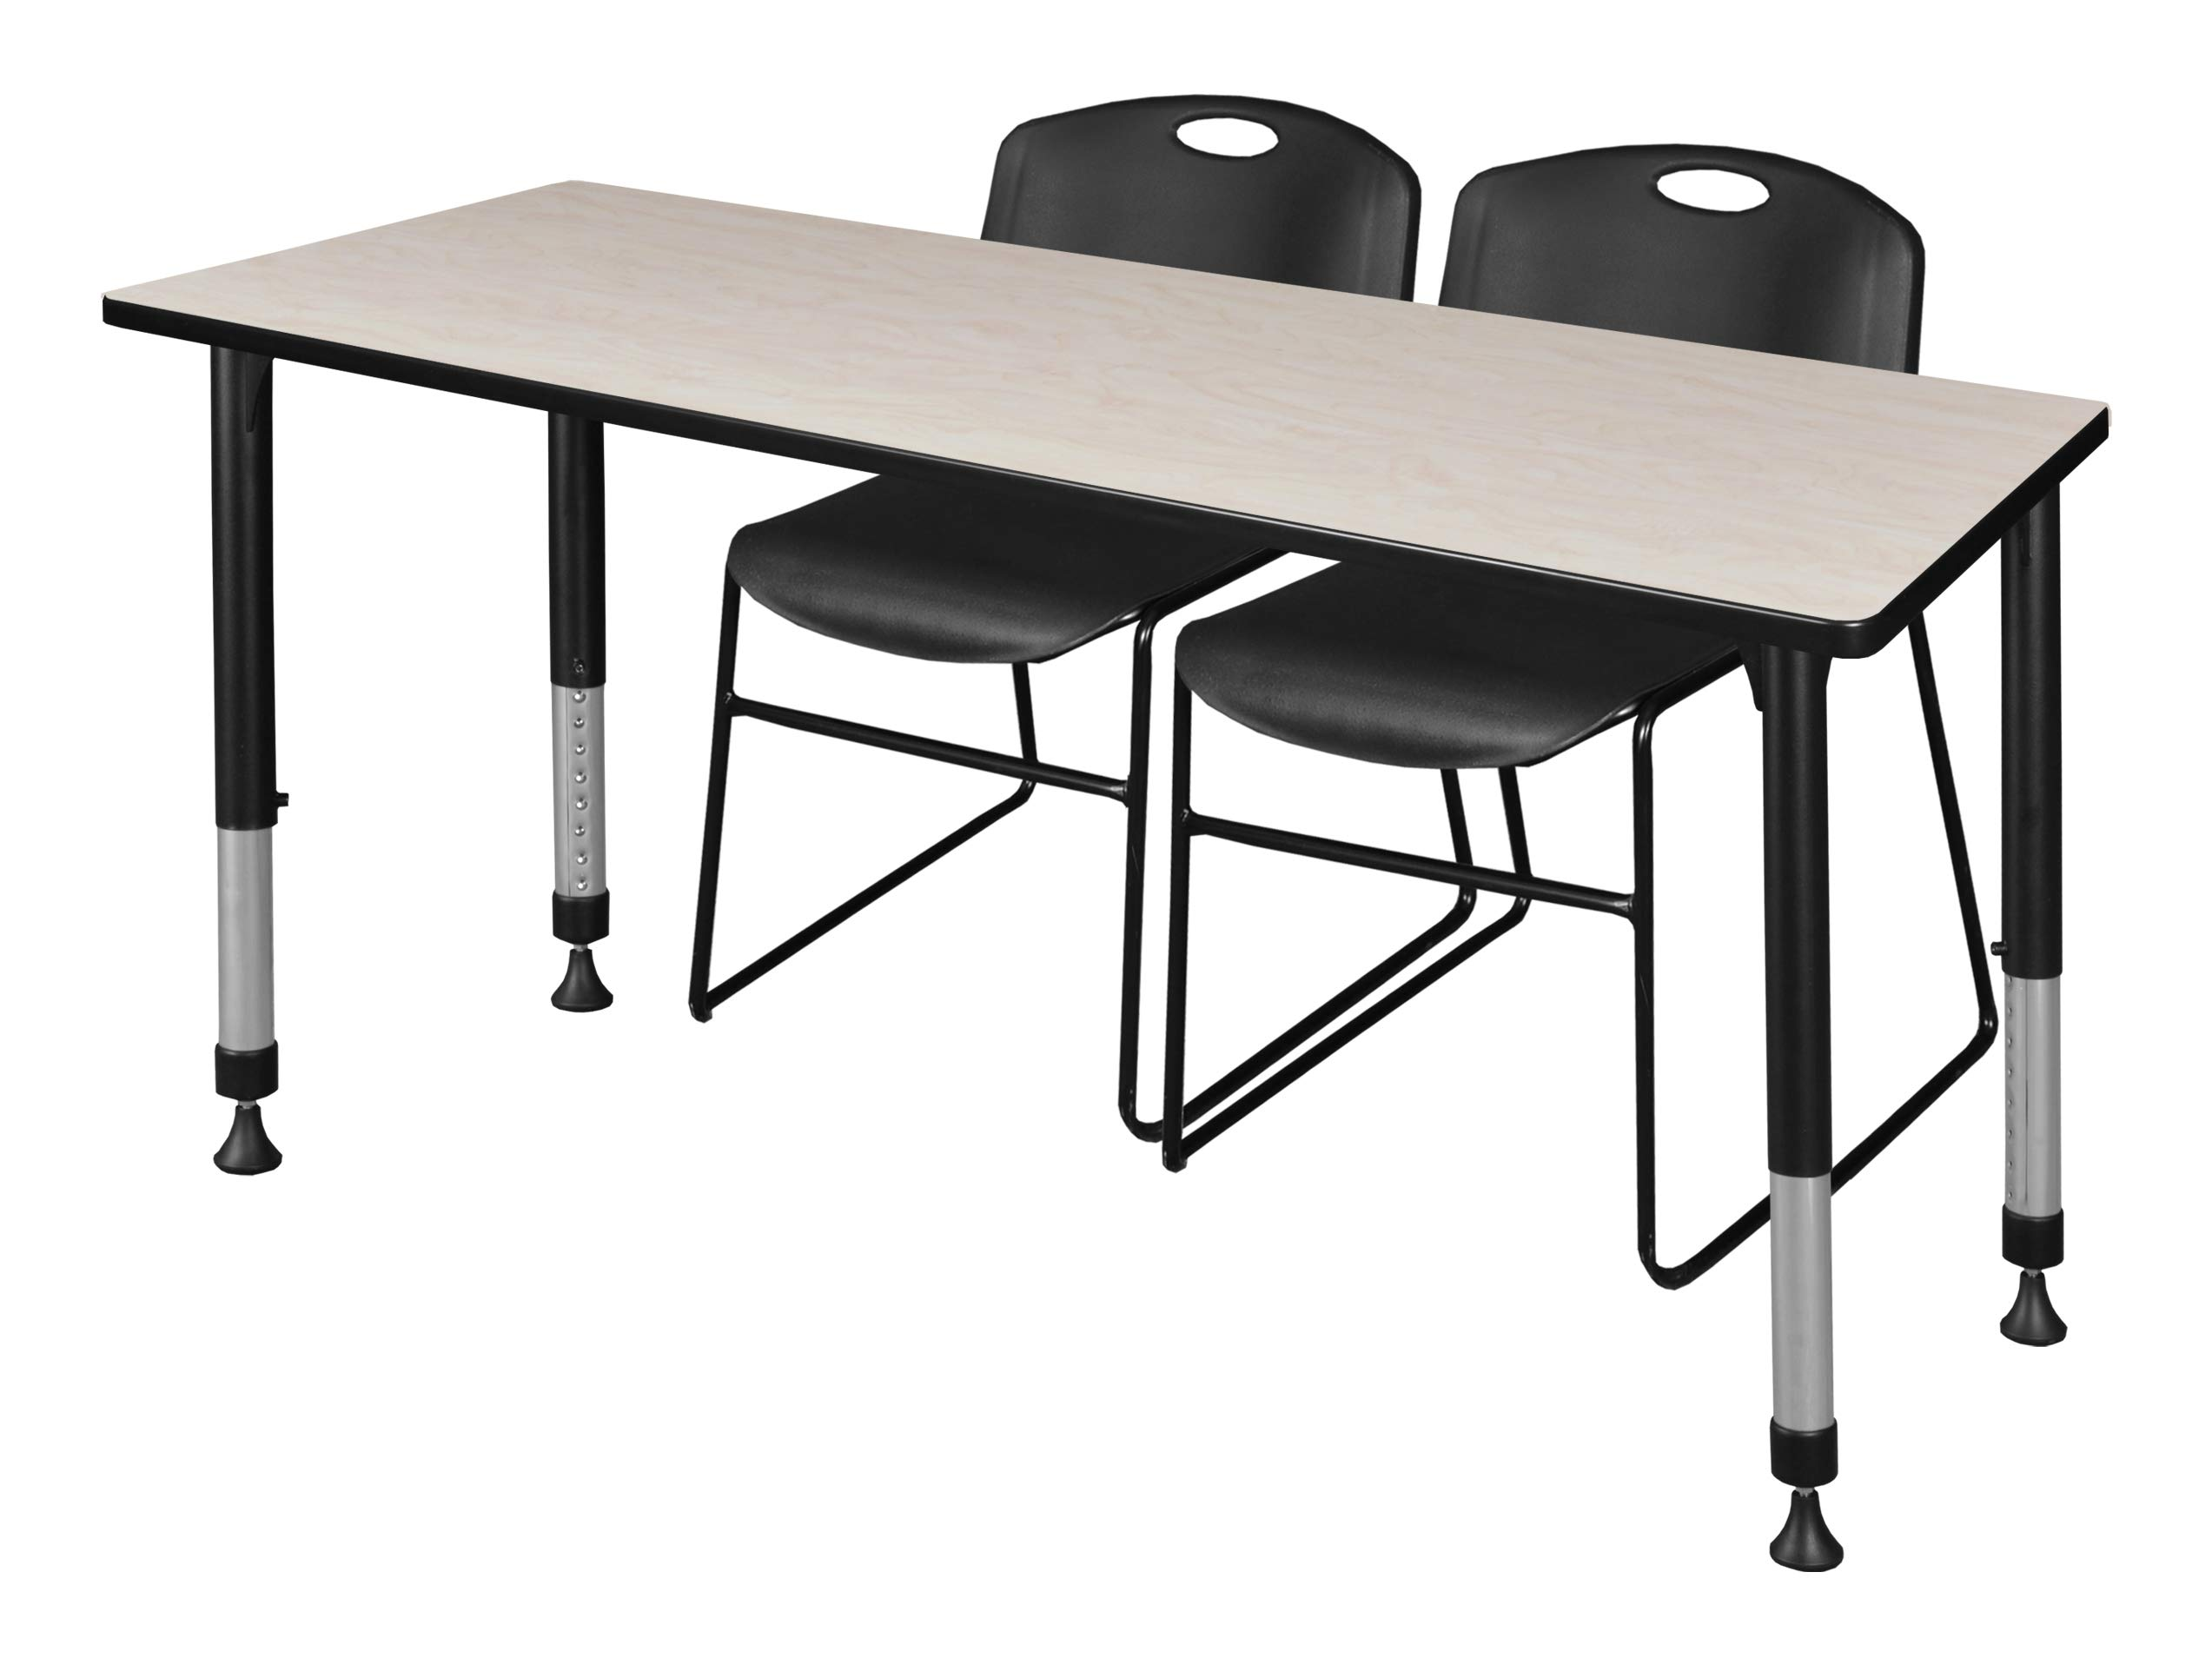 Regency MT6630PLAPBK44BK Kee Height Adjustable Classroom Table Set with Two Zeng Chairs 66'' x 30'' Maple/Black